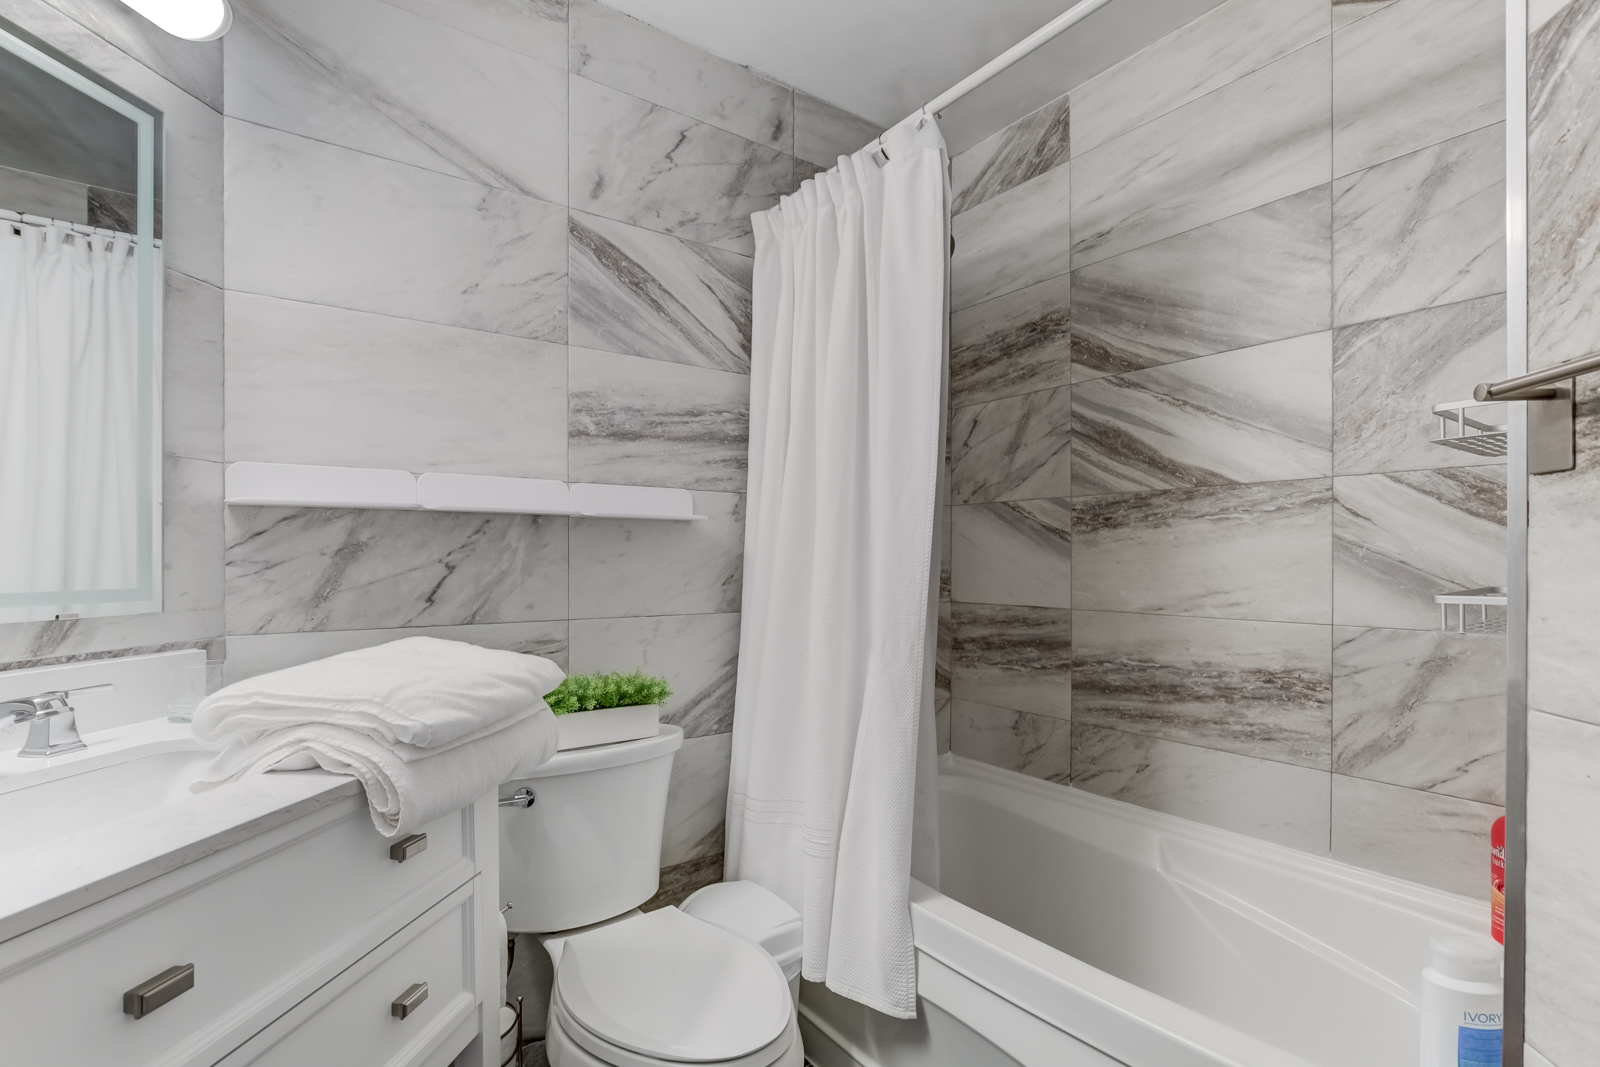 Gorgeous 4-piece bathroom white and gray rectangular tiles, white shelves and sink with drawers.